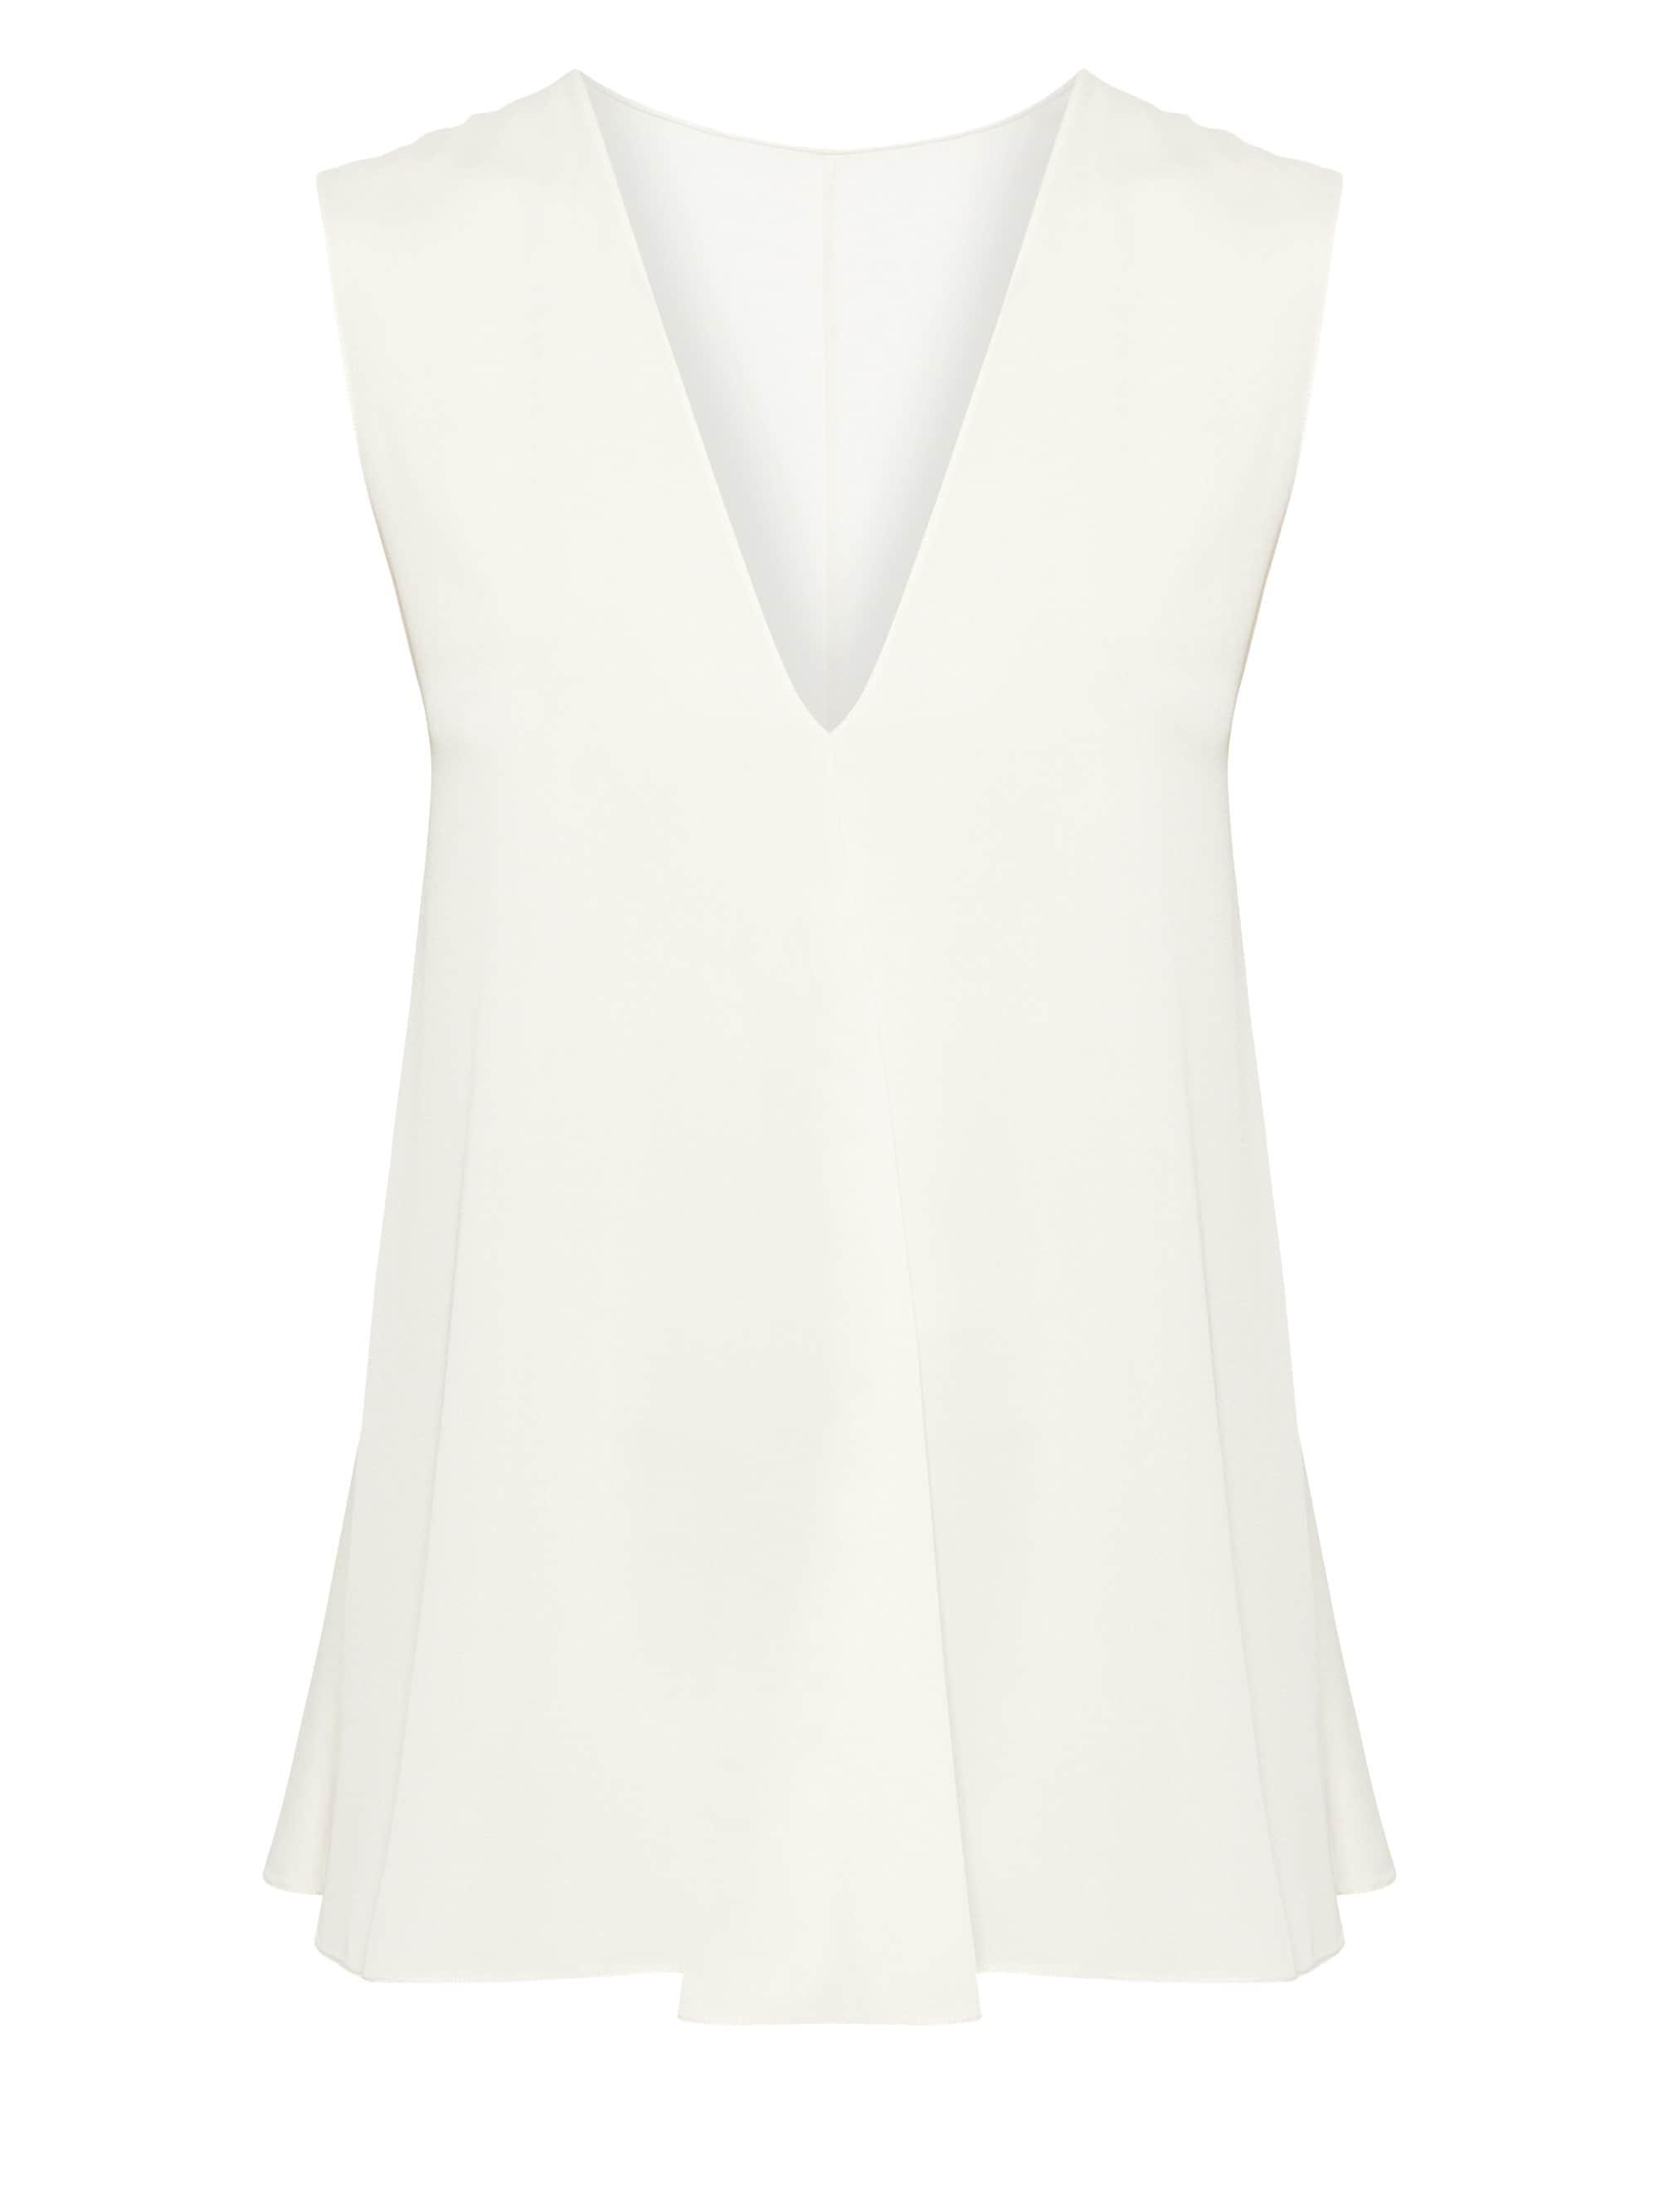 79be7f2e5293a Lyst - Theory V-neck A-line Top in White